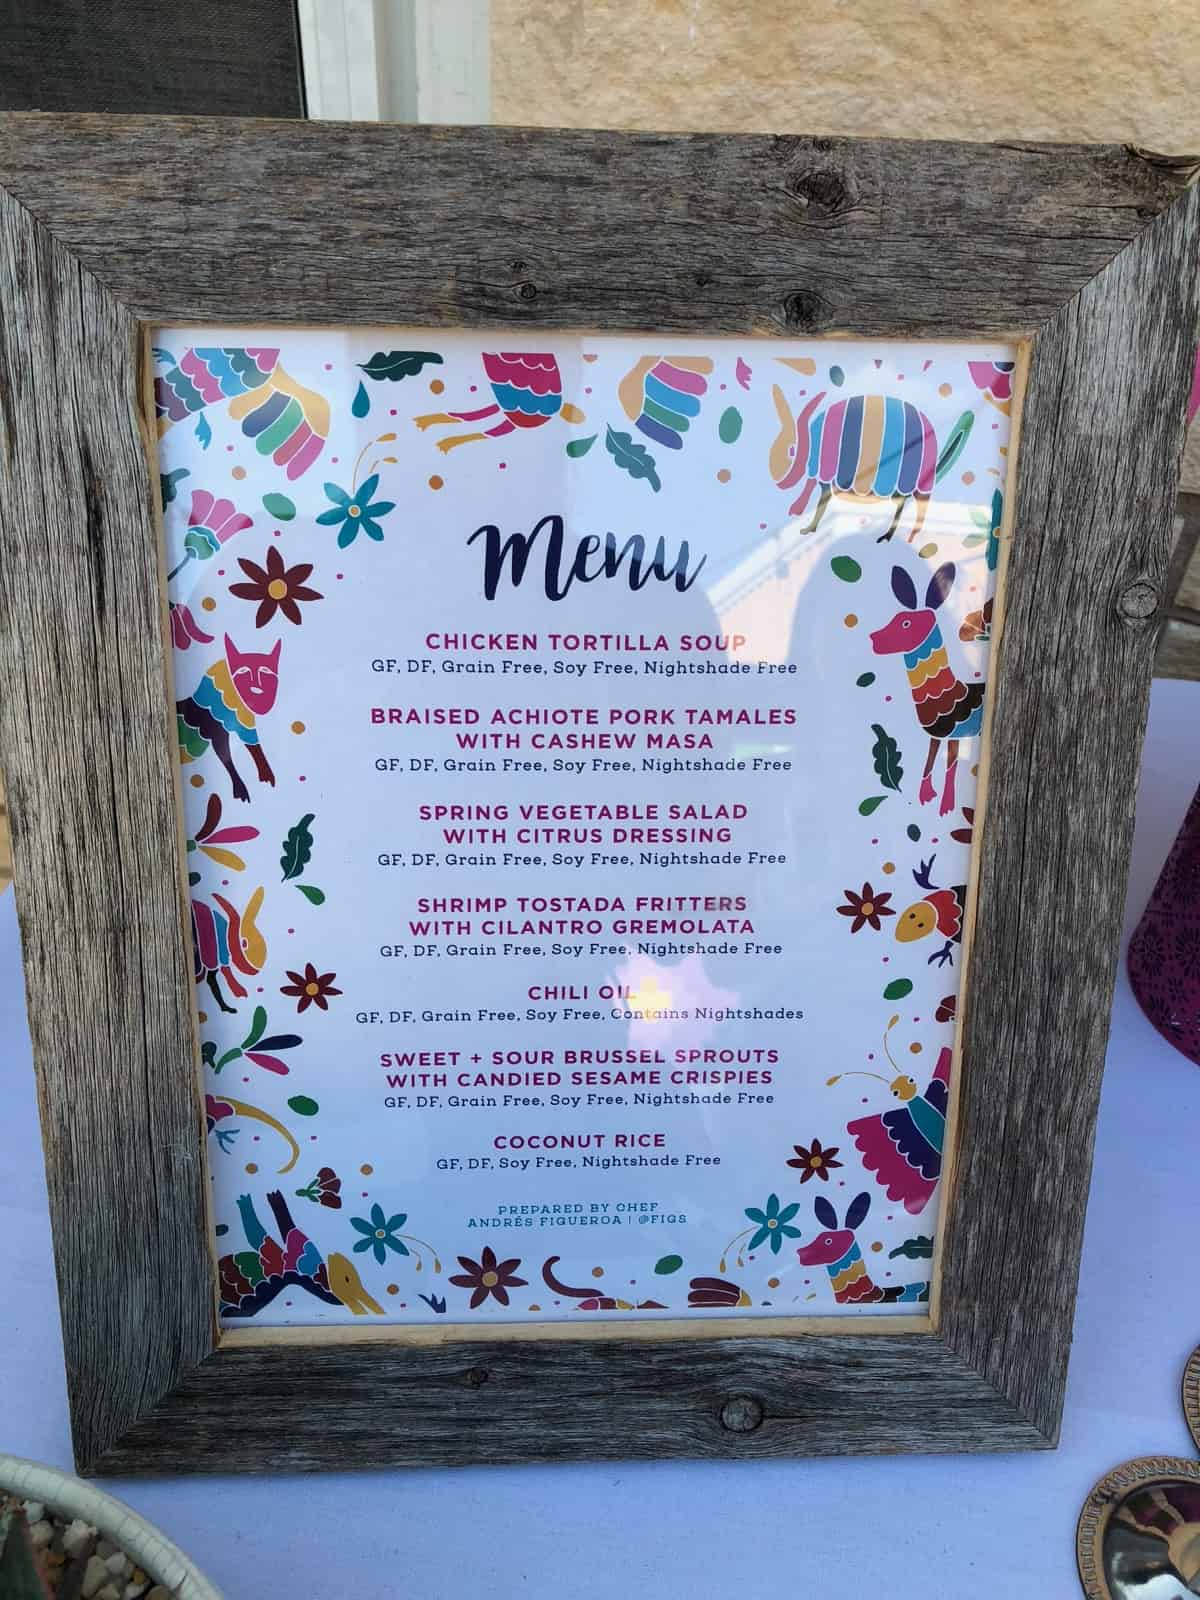 Dinner menu in a wooden frame